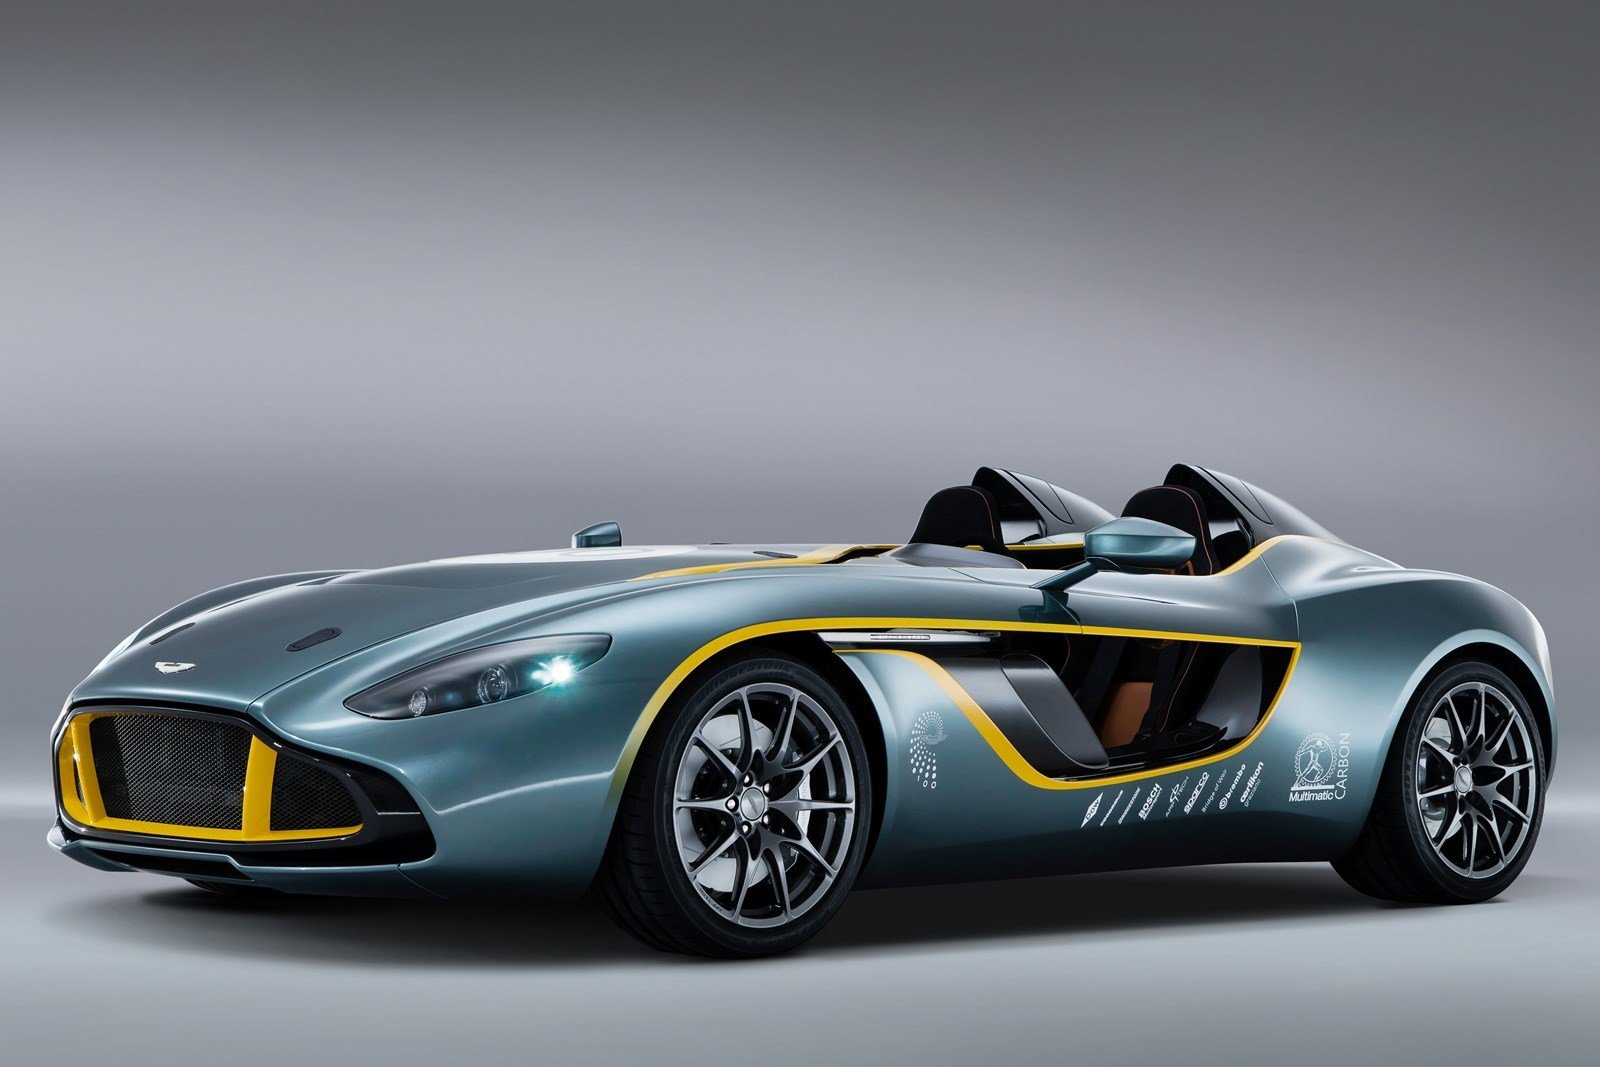 Latest Aston Martin Cars News Cc100 Speedster Concept Free Download